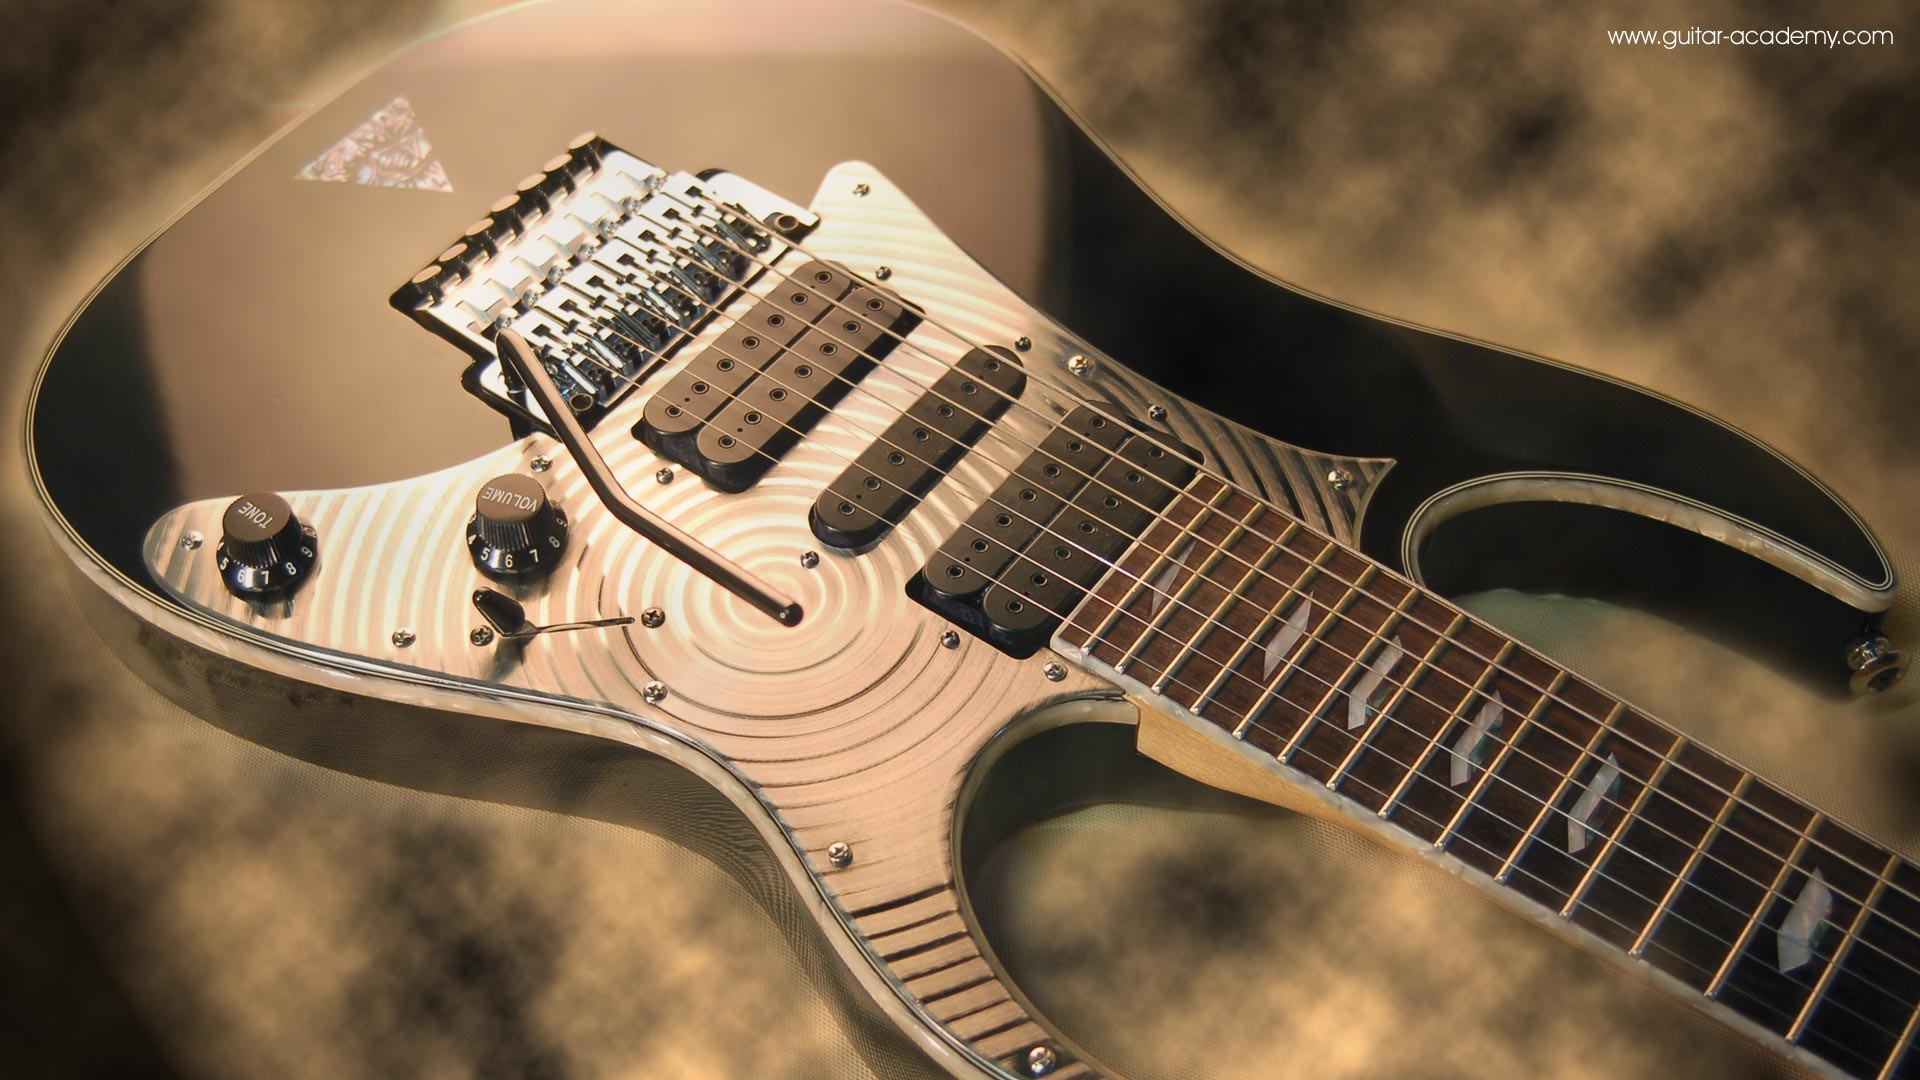 Ibanez Guitar Wallpaper 55 images